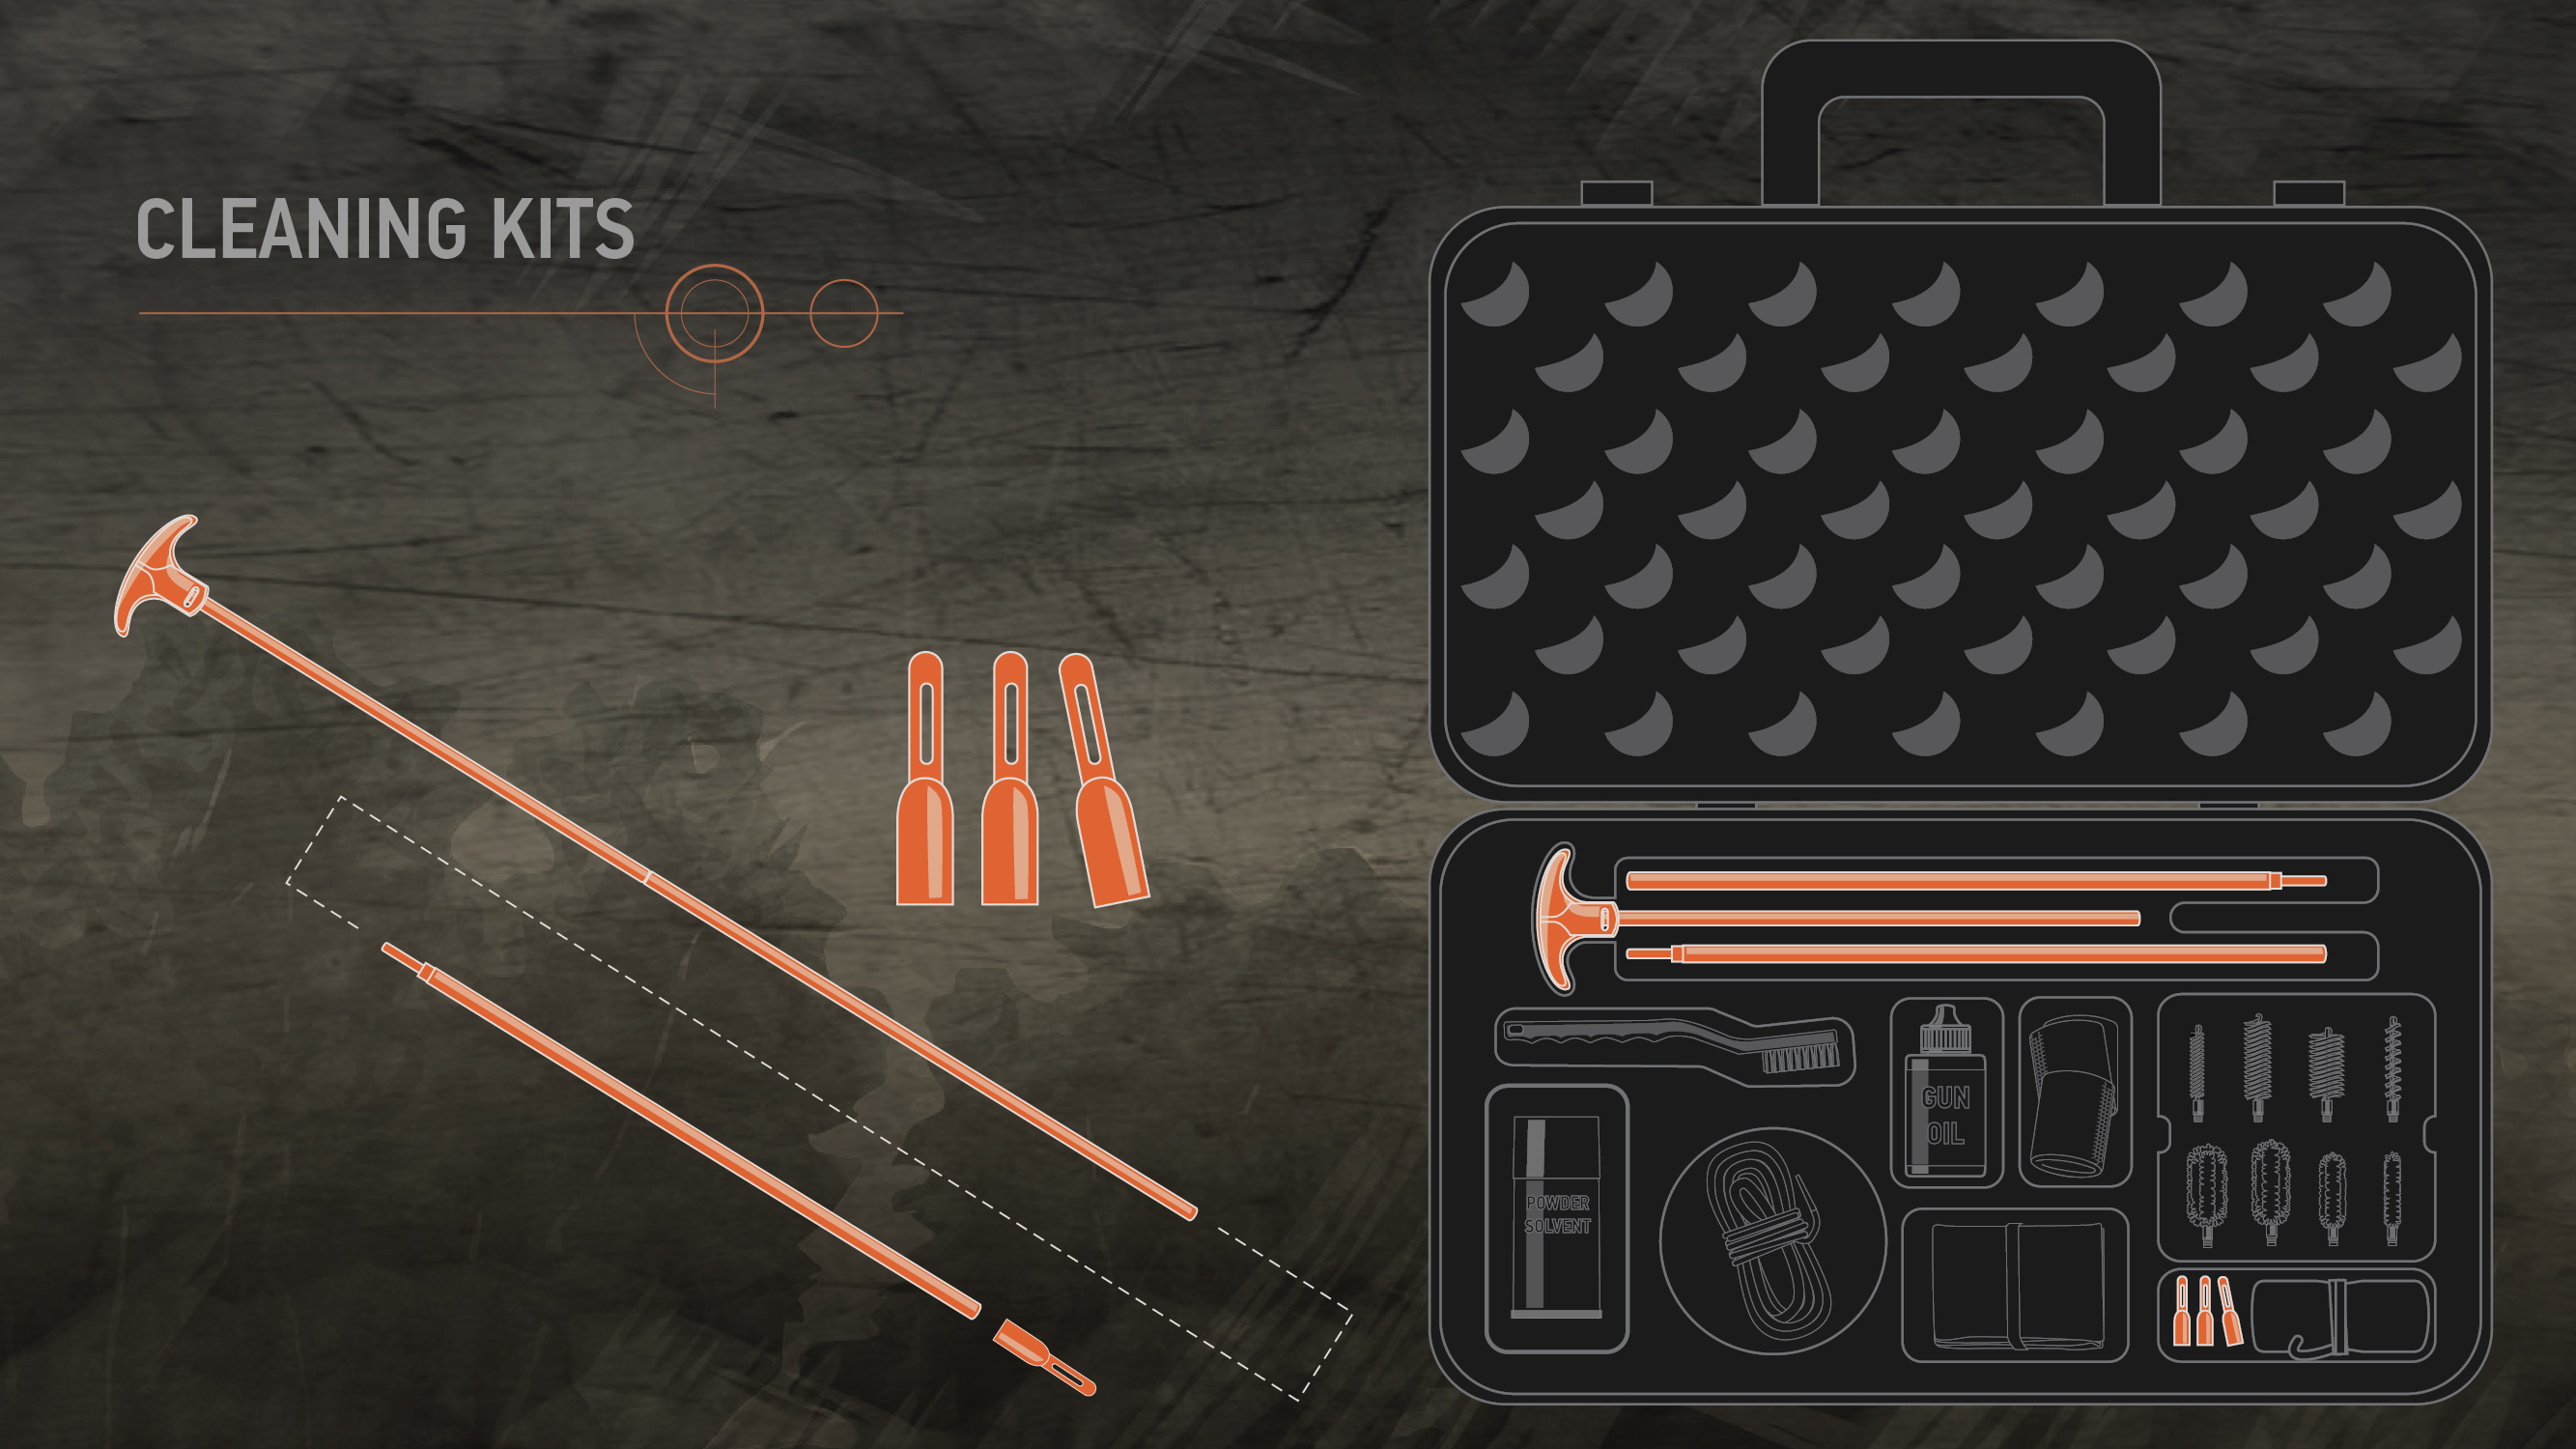 Illustration of a cleaning kit with a cleaning rod and cleaning rod tips highlighted in orange.